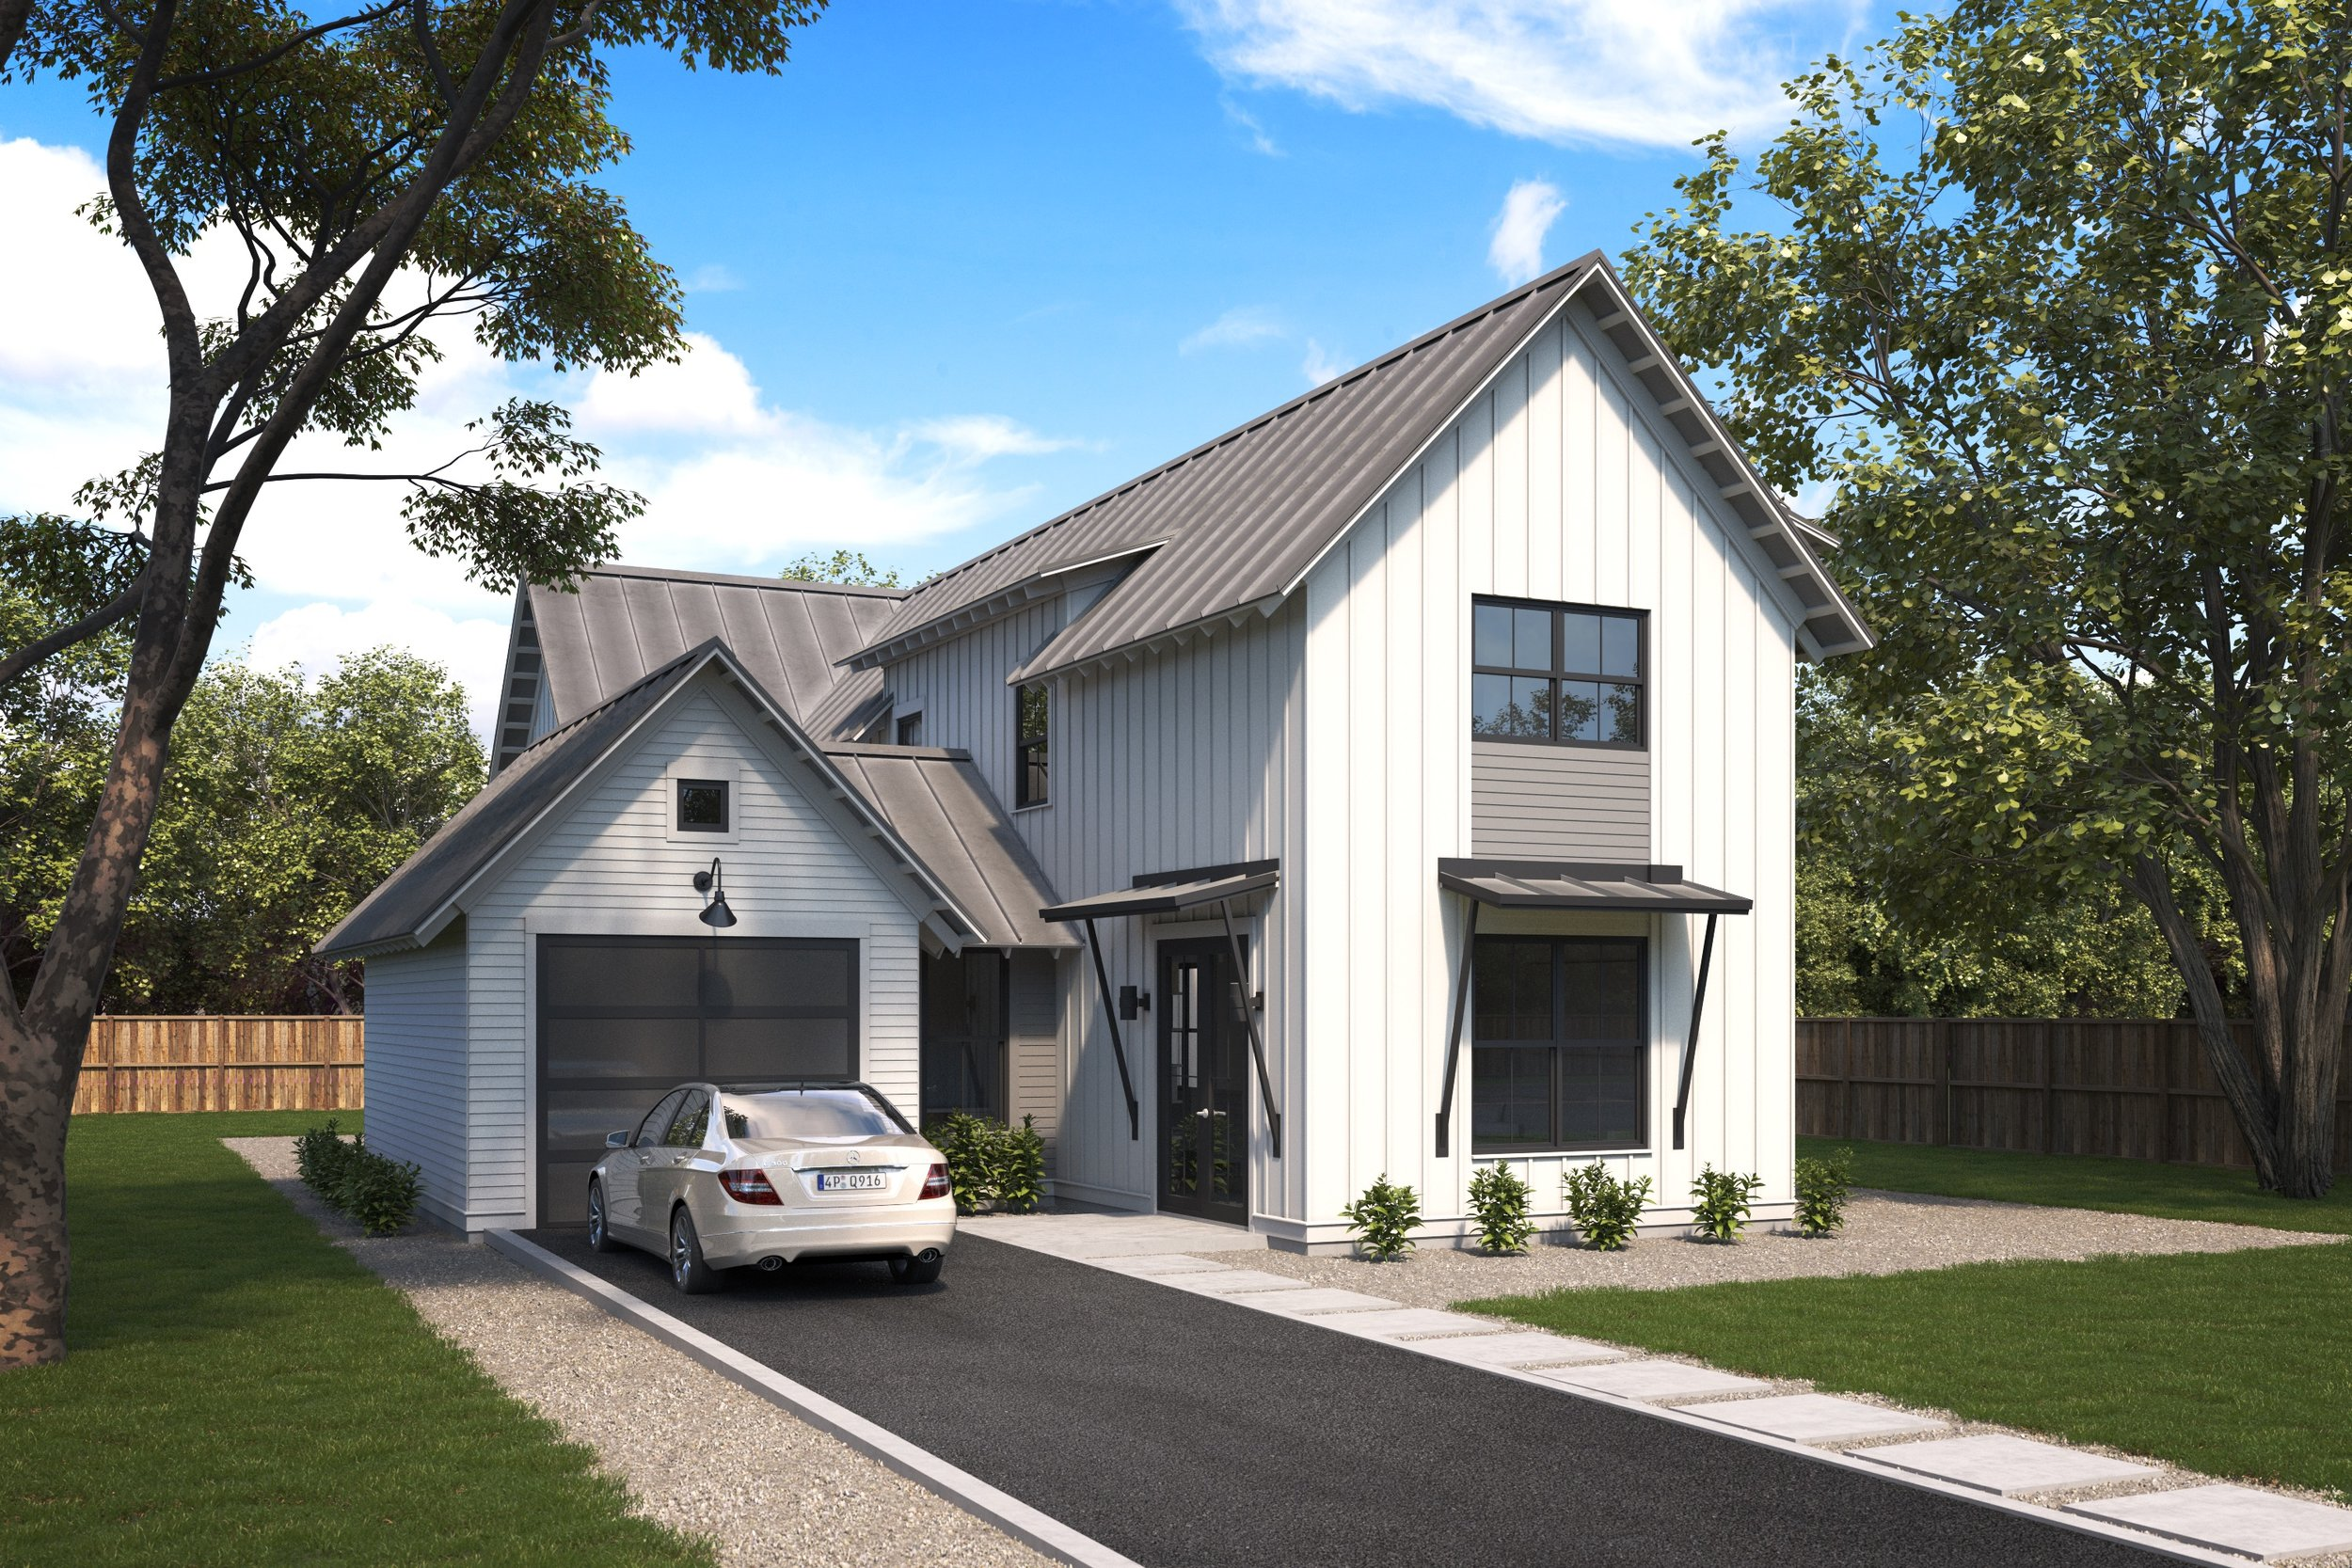 Design Tips 4 Steps To Building A Dream Home On A Budget Love Ding